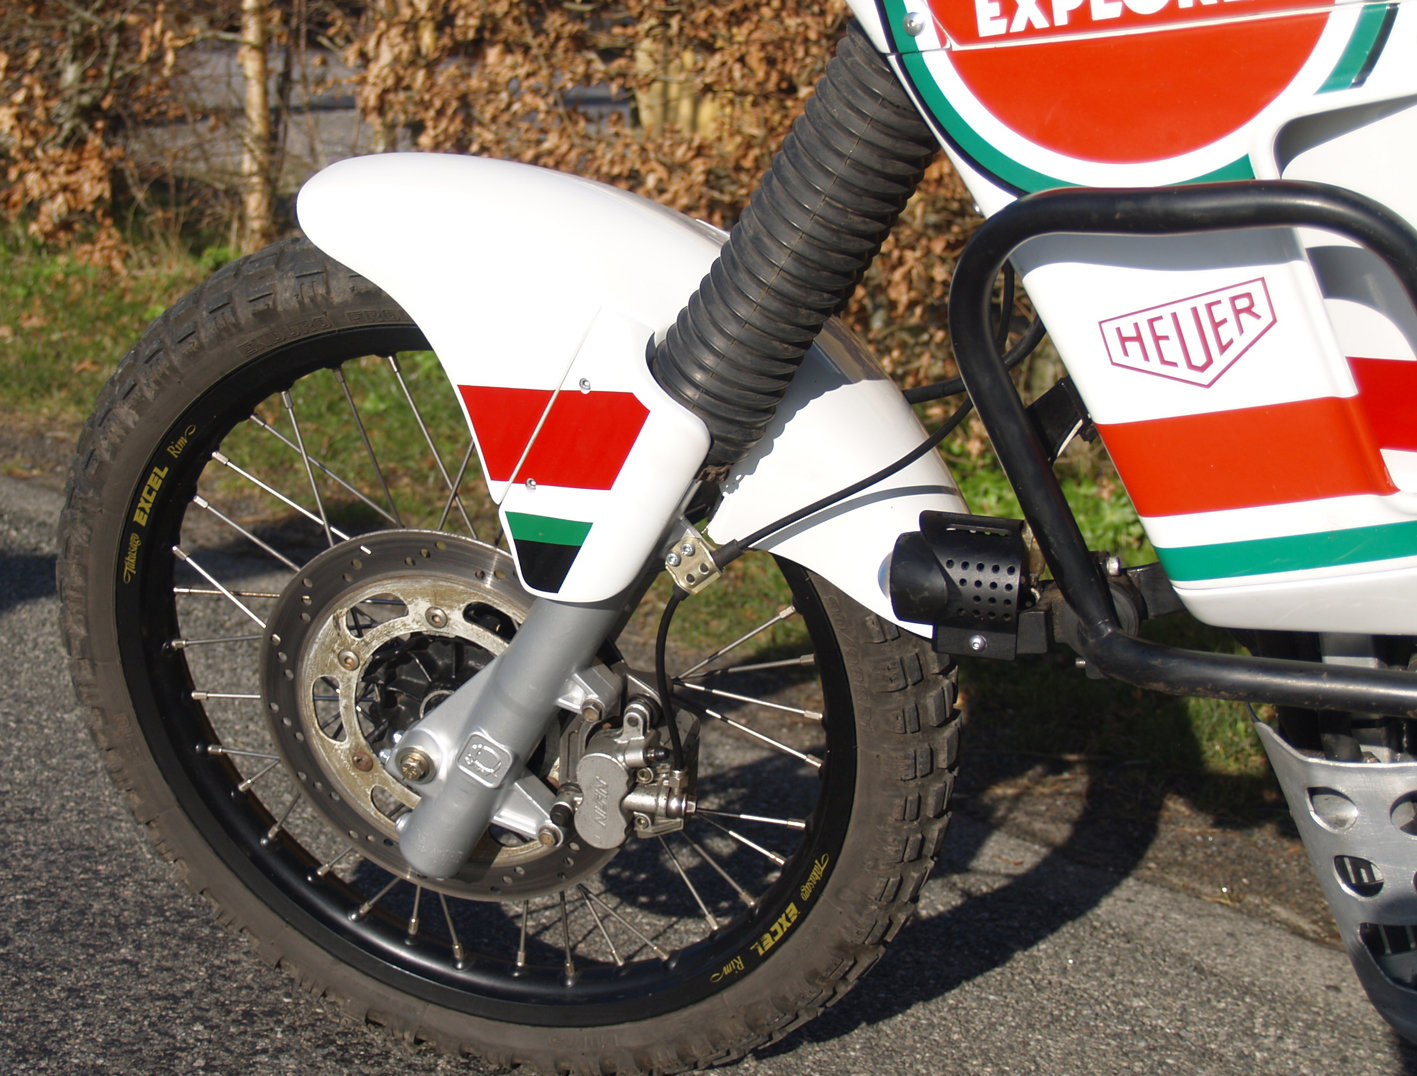 1990 CAGIVA ELEFANT LUCKY EXPLORER 900ie For Sale (picture 4 of 6)